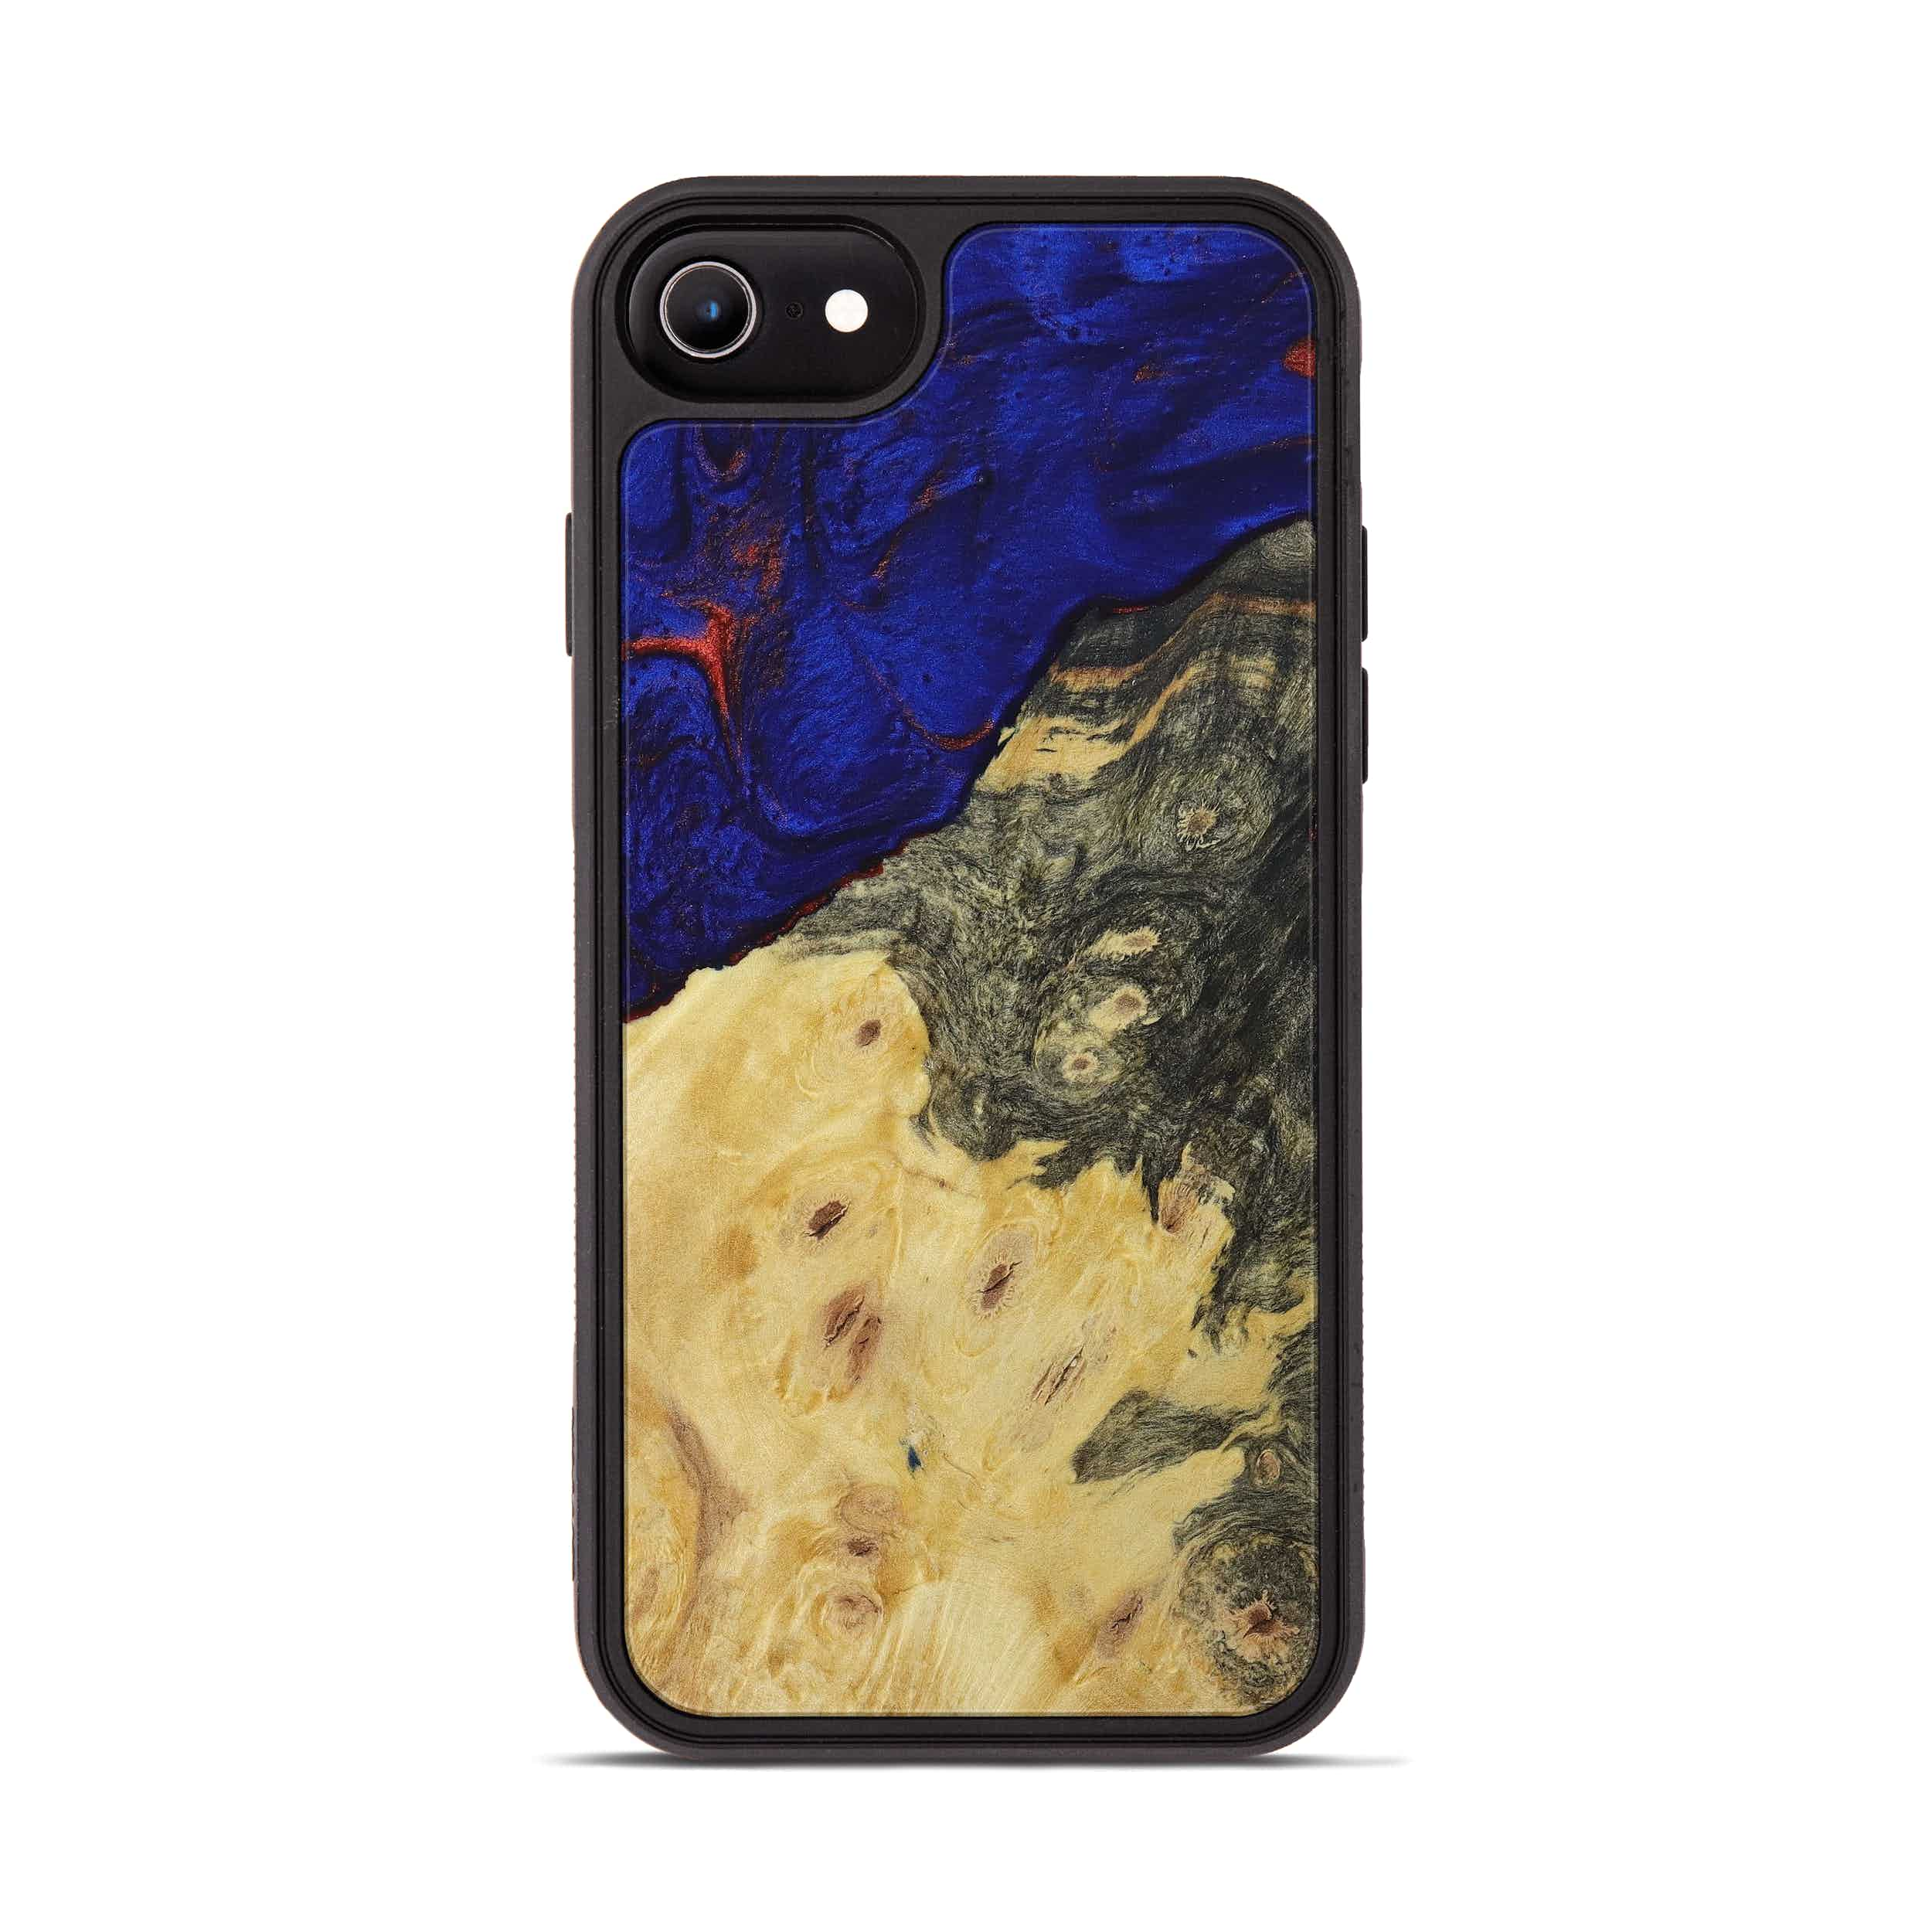 iPhone 6s Wood+Resin Phone Case - Garry (Blue & Red, 395963)